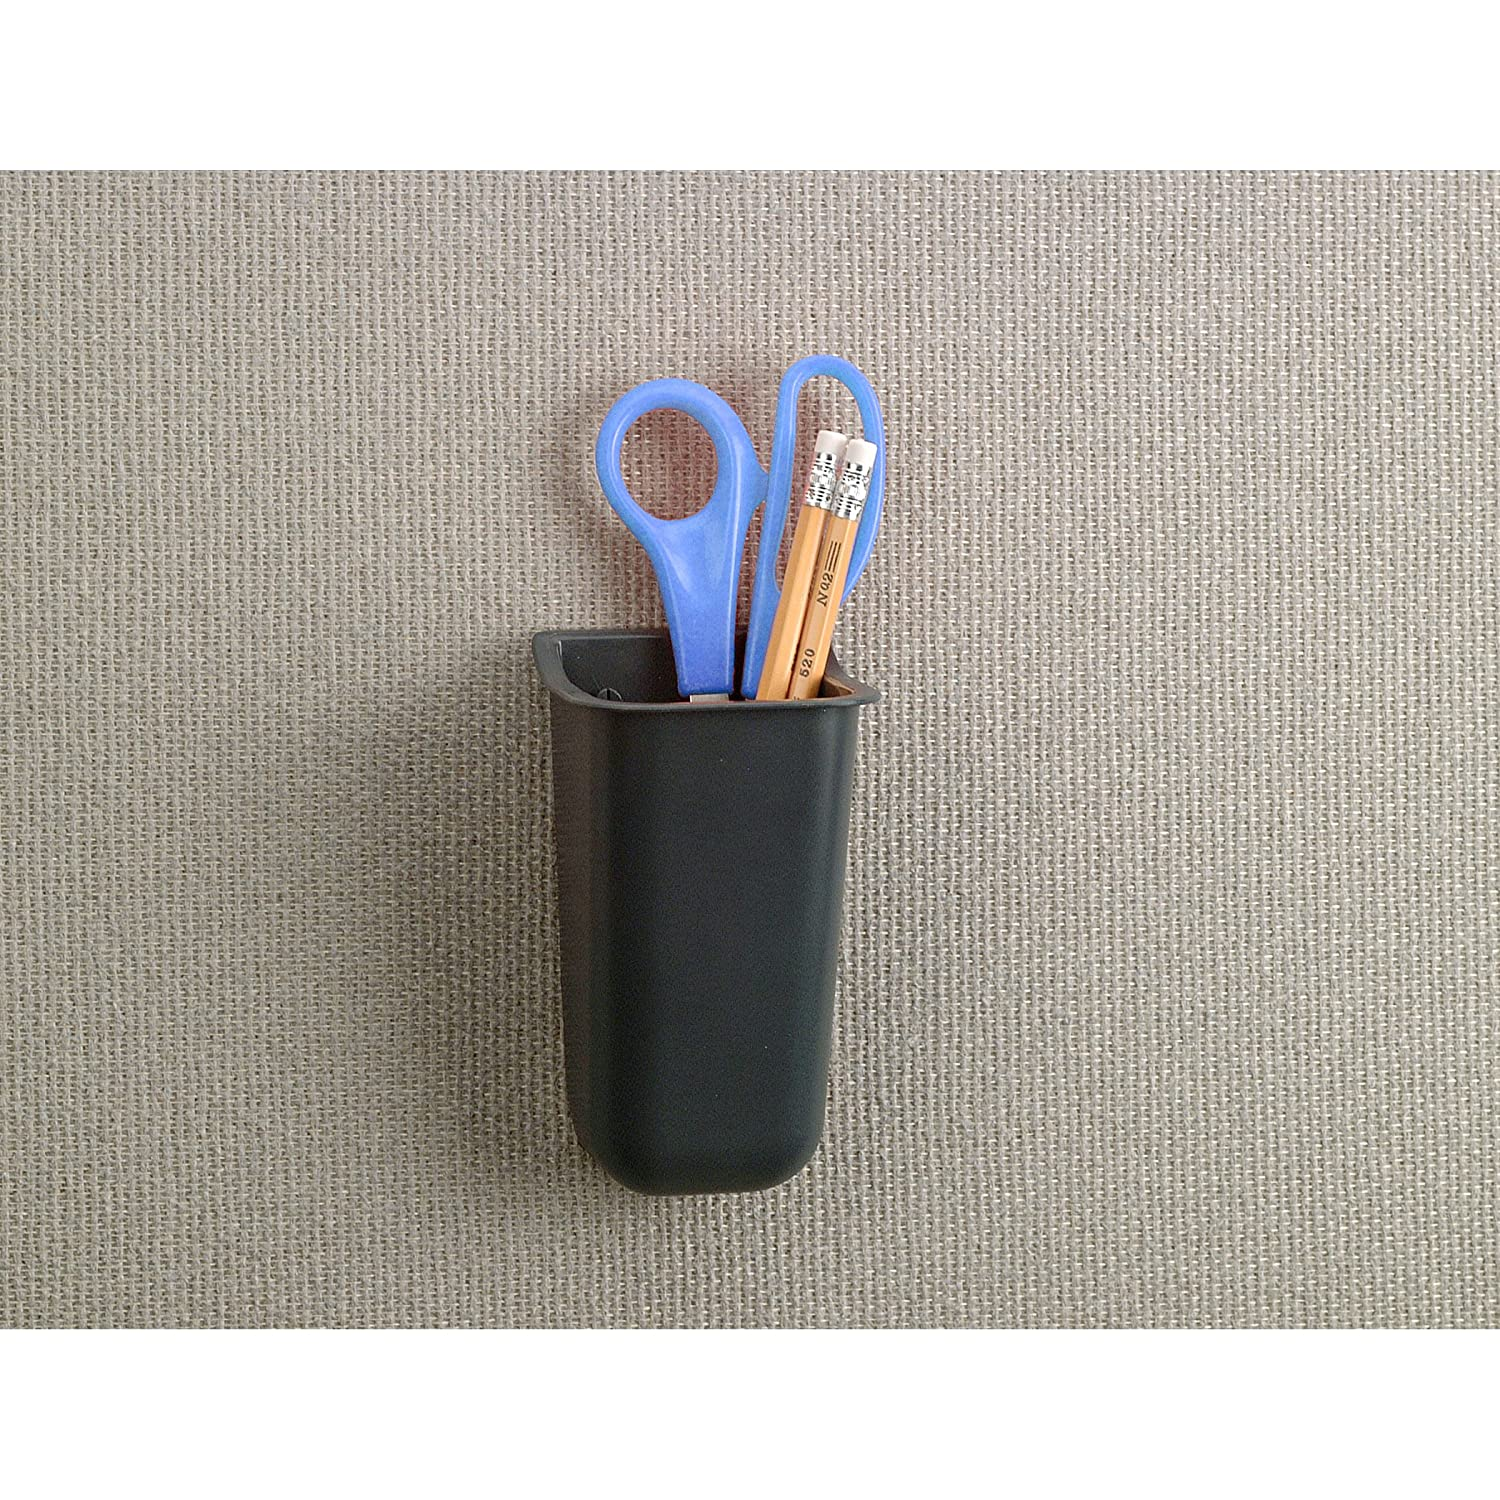 Material Plastic Tool Tube Color Gray